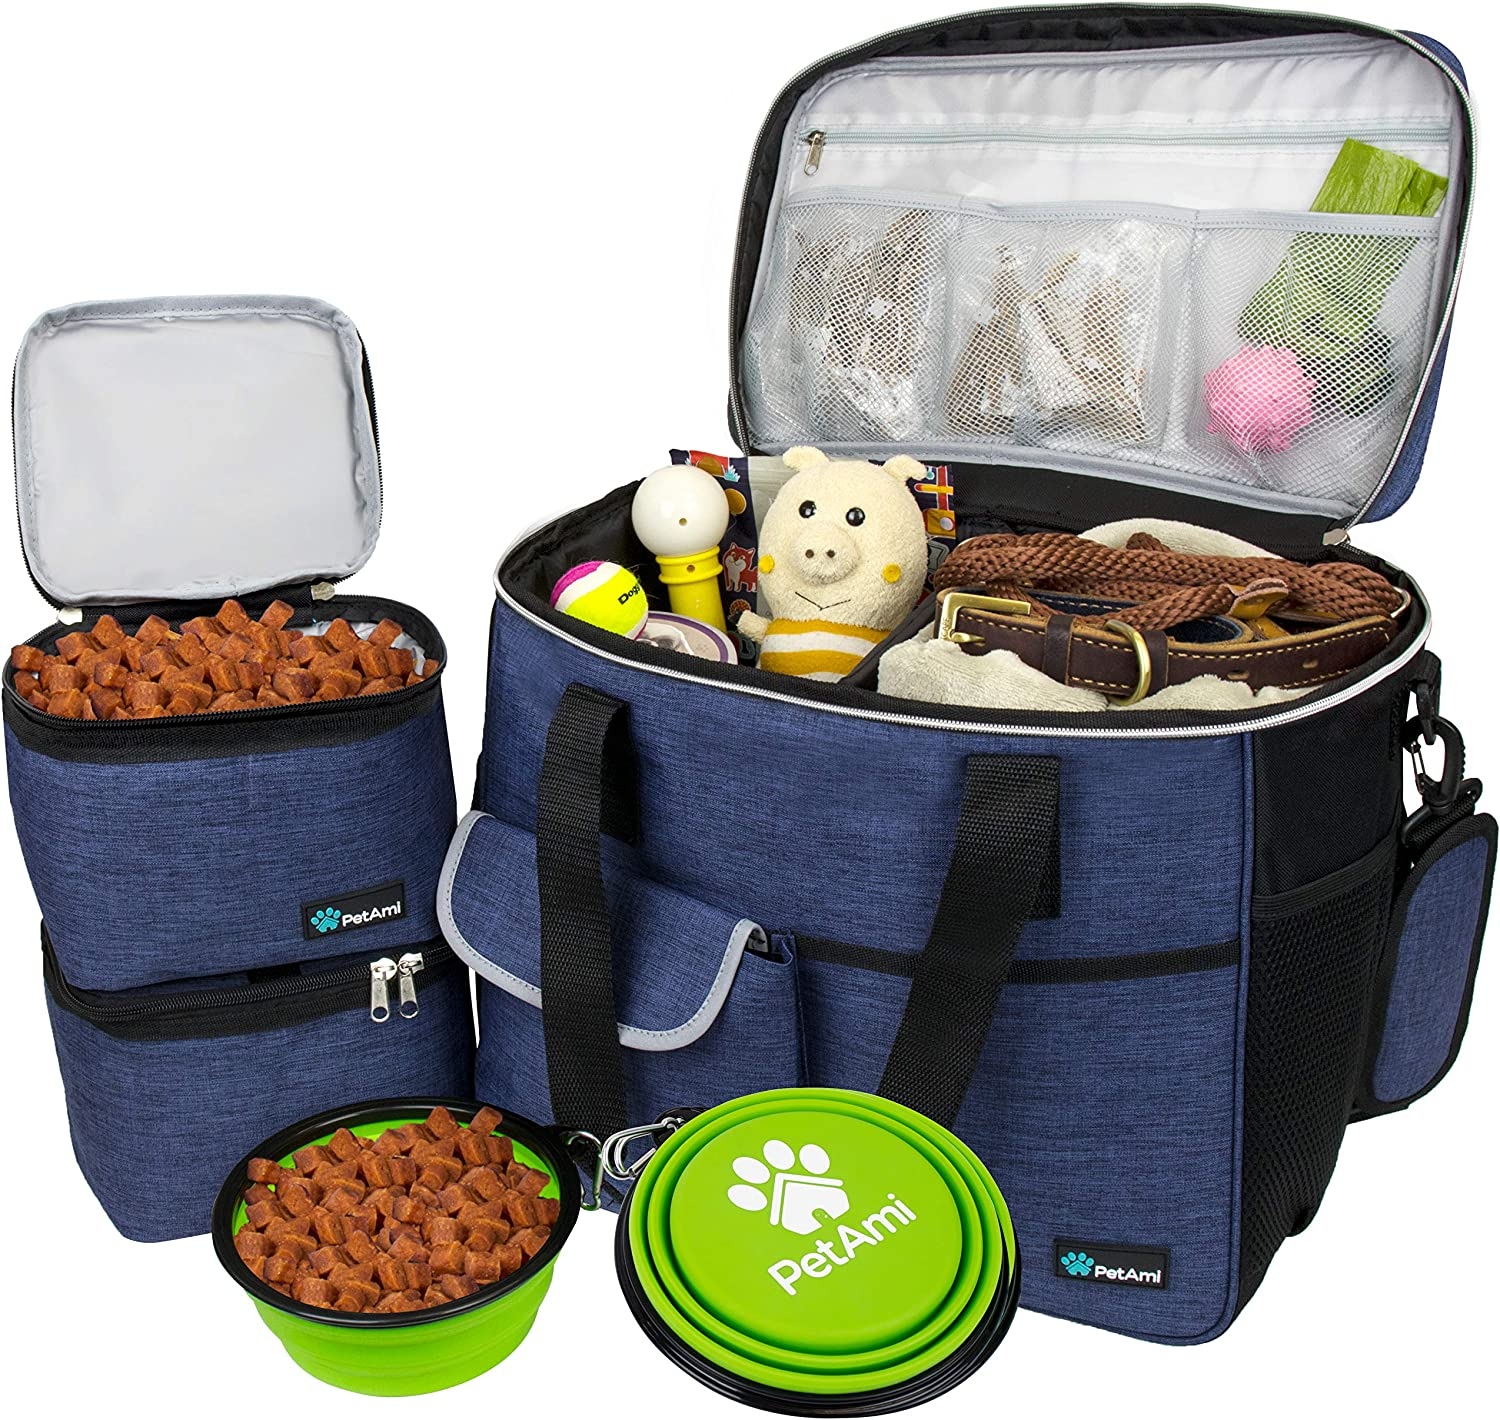 PetAmi Dog Travel Bag | Airline Approved Tote Organizer with Multi-Function Pockets, Food Container Bag and Collapsible Bowl | Perfect Weekend Pet Travel Set for Dog, Cat